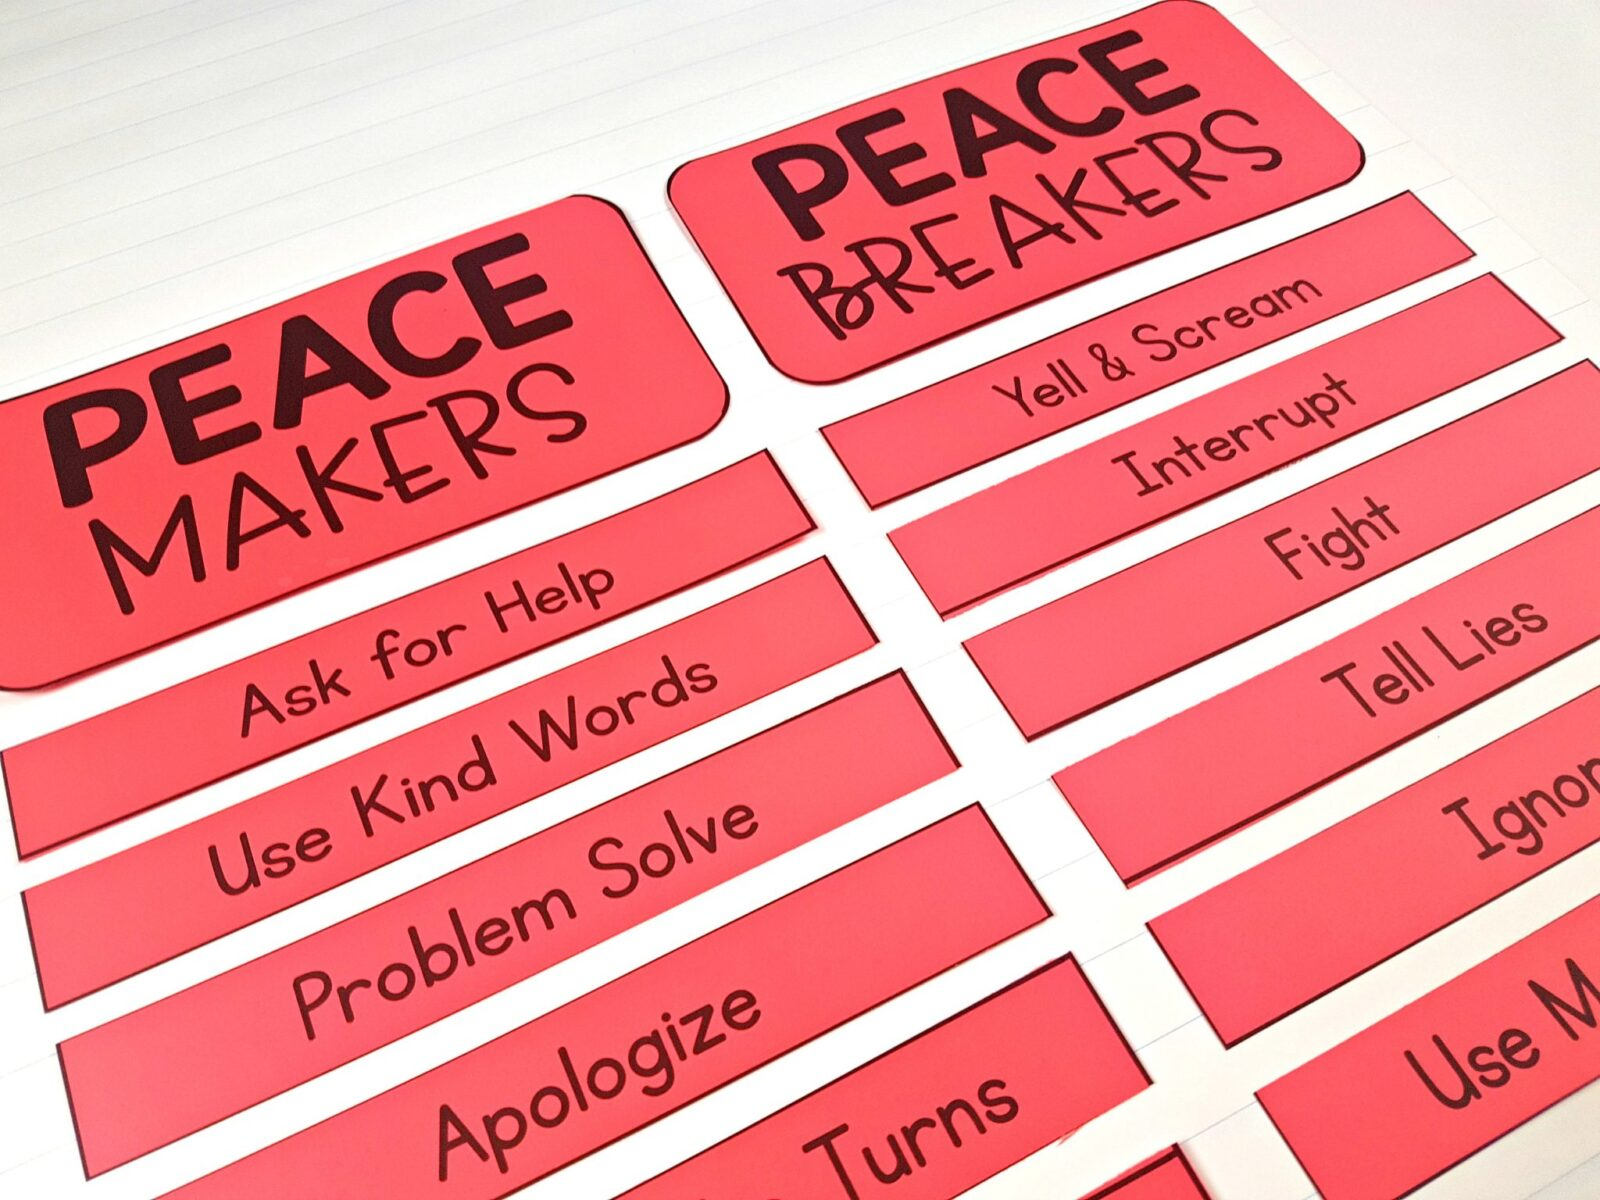 conflict resolution activities - peace makers and peace breakers sorting cards